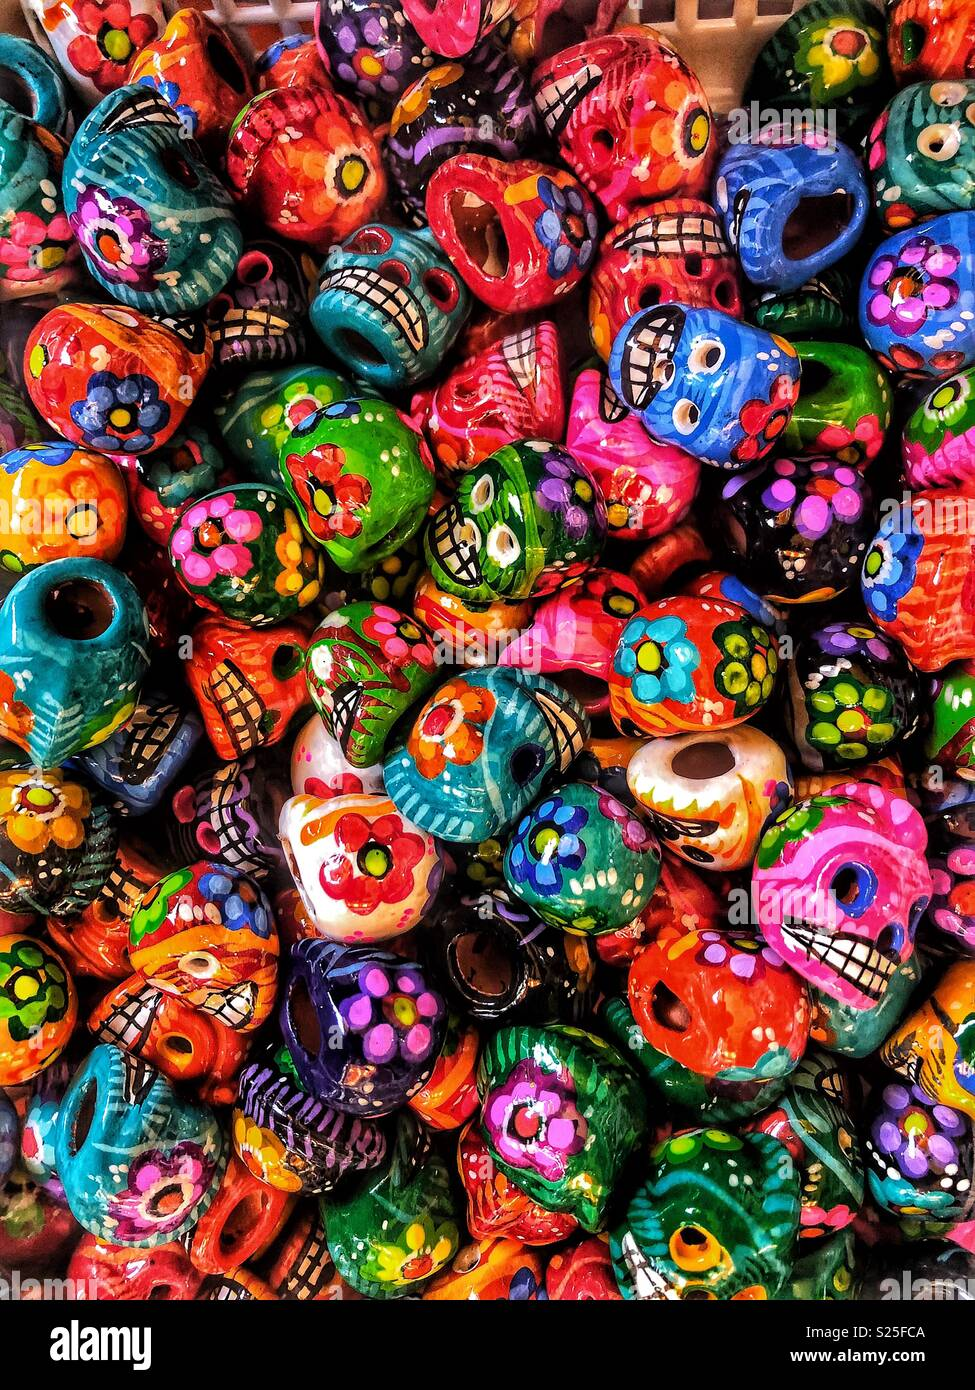 colorful mexican day of the dead skulls stock photo 311137802 alamy